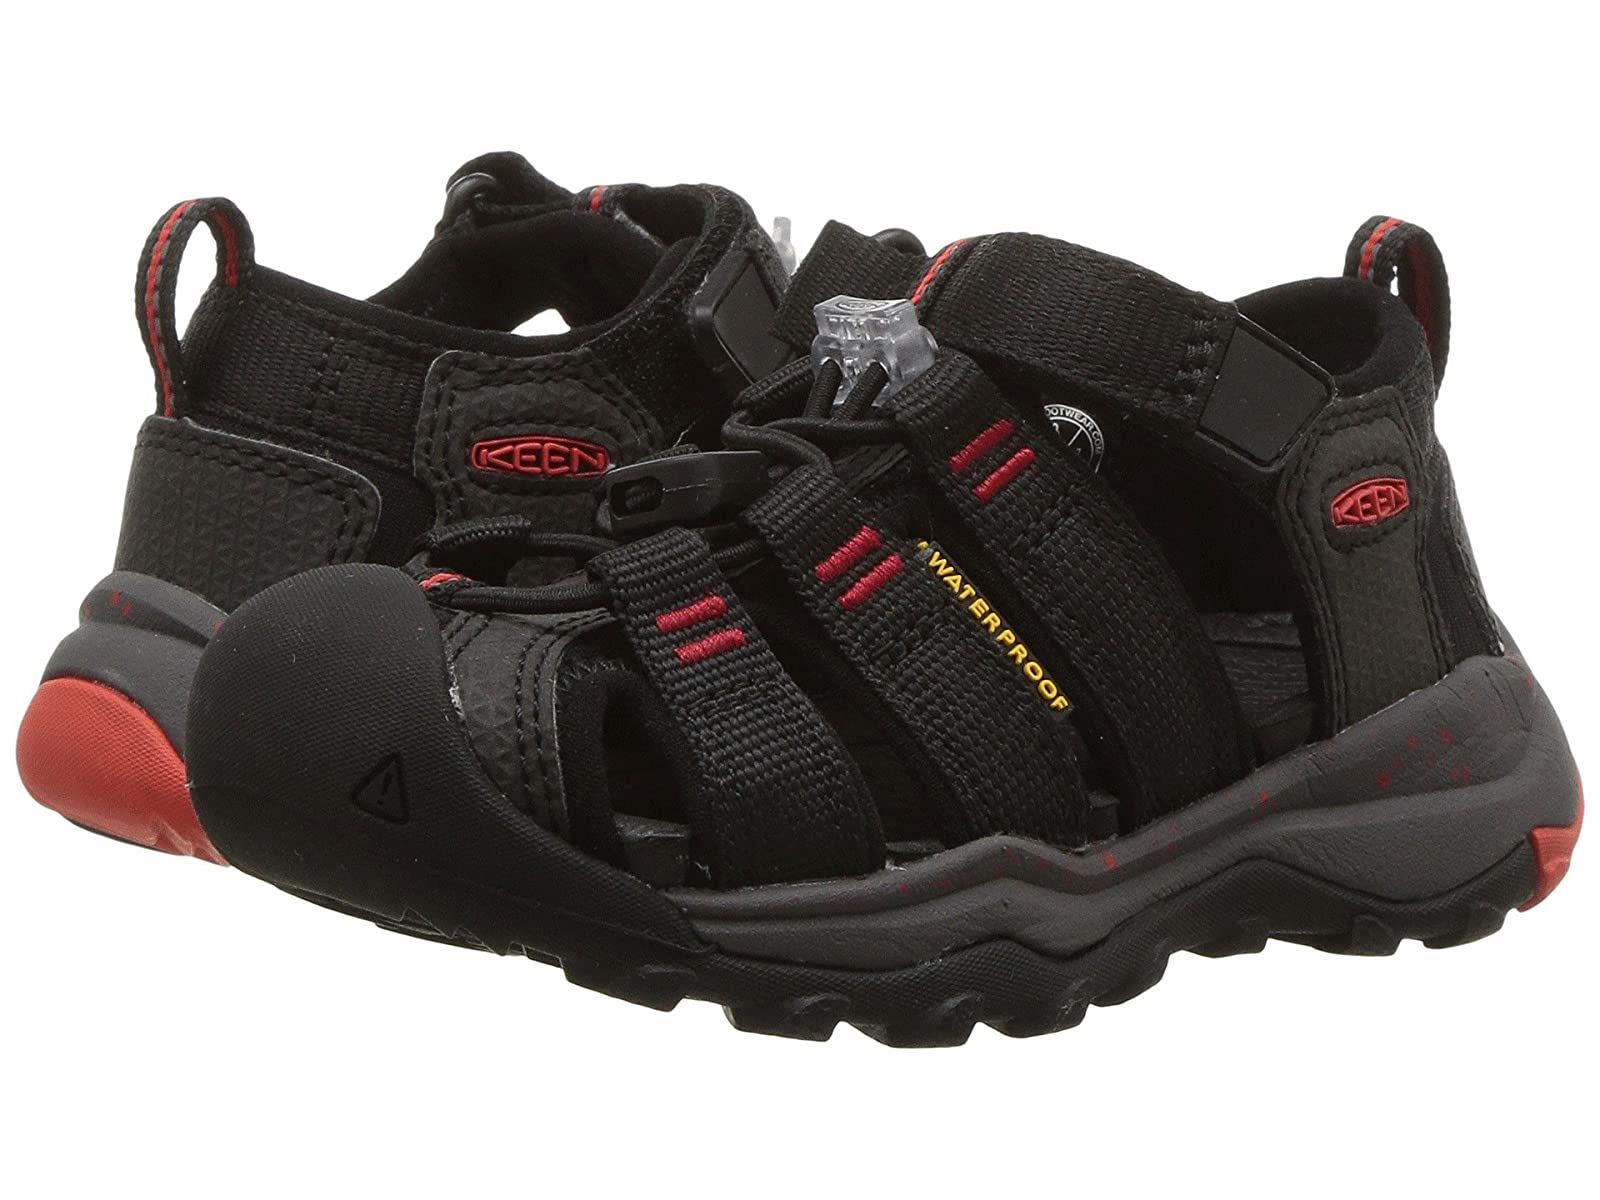 Keen Kids Newport Neo H2 (Toddler/Little Kid)Atmospheric grades have affordable shoes